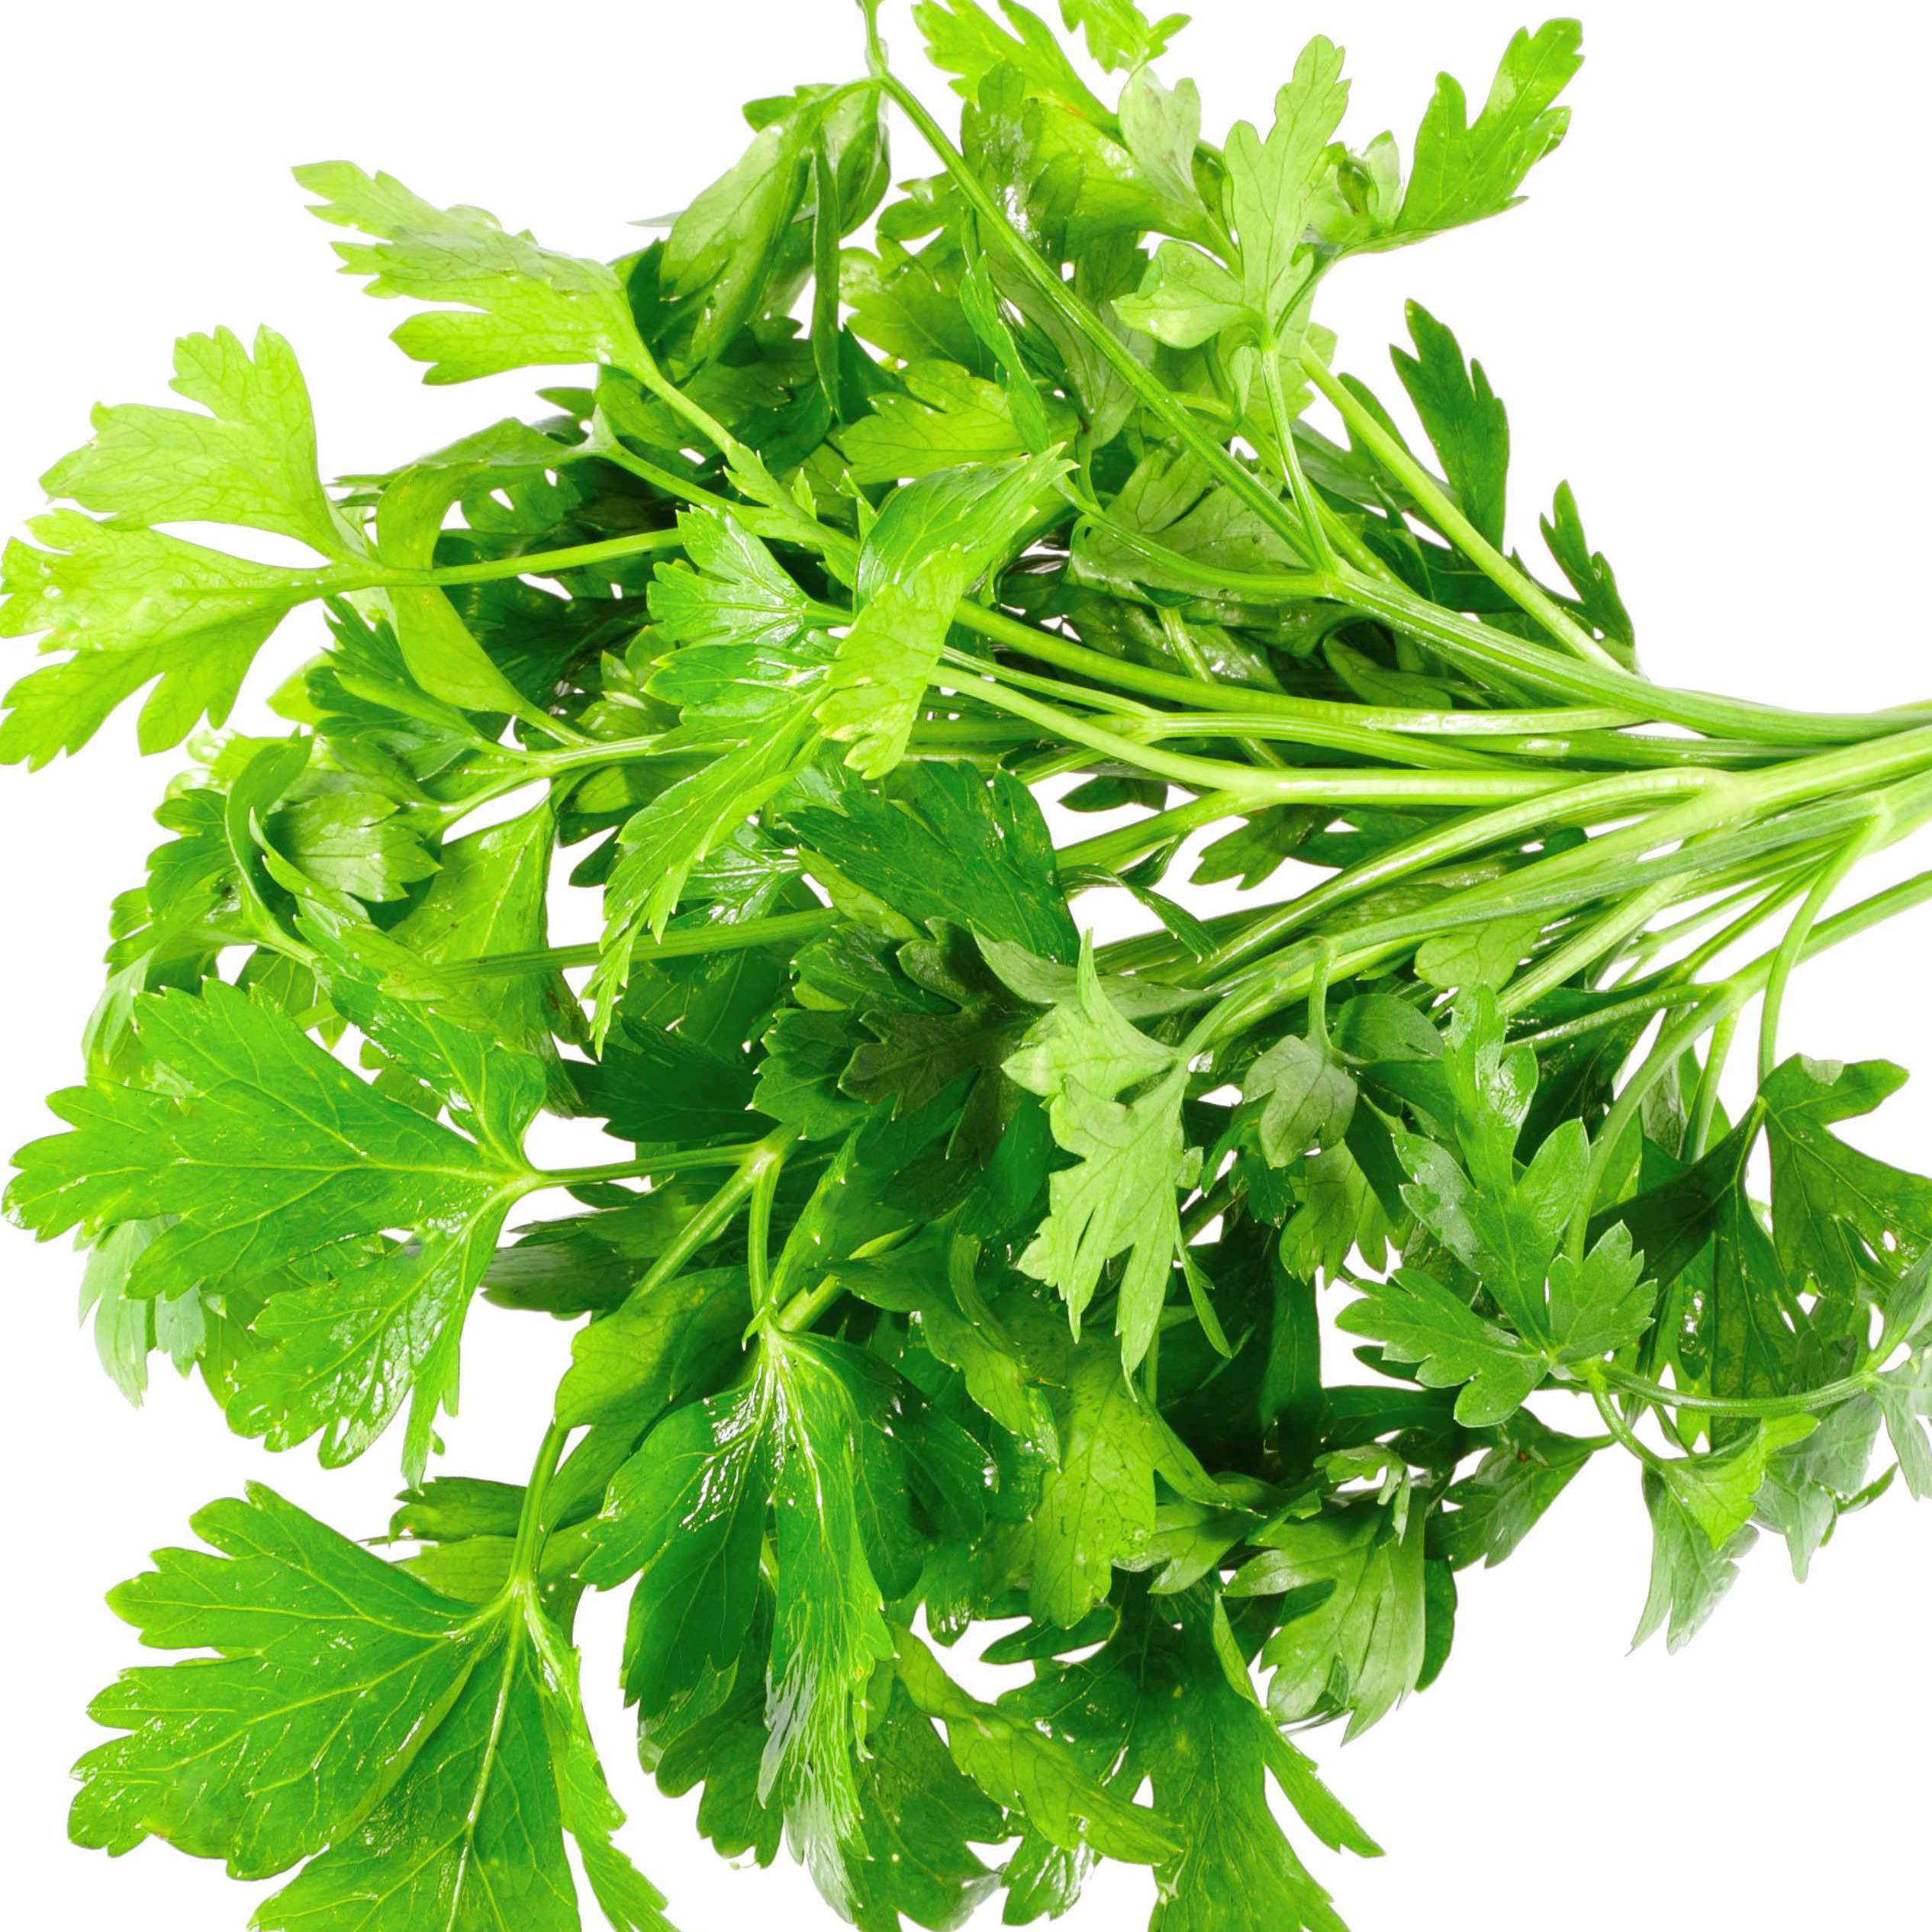 sprigs of bright green parsley, herbs